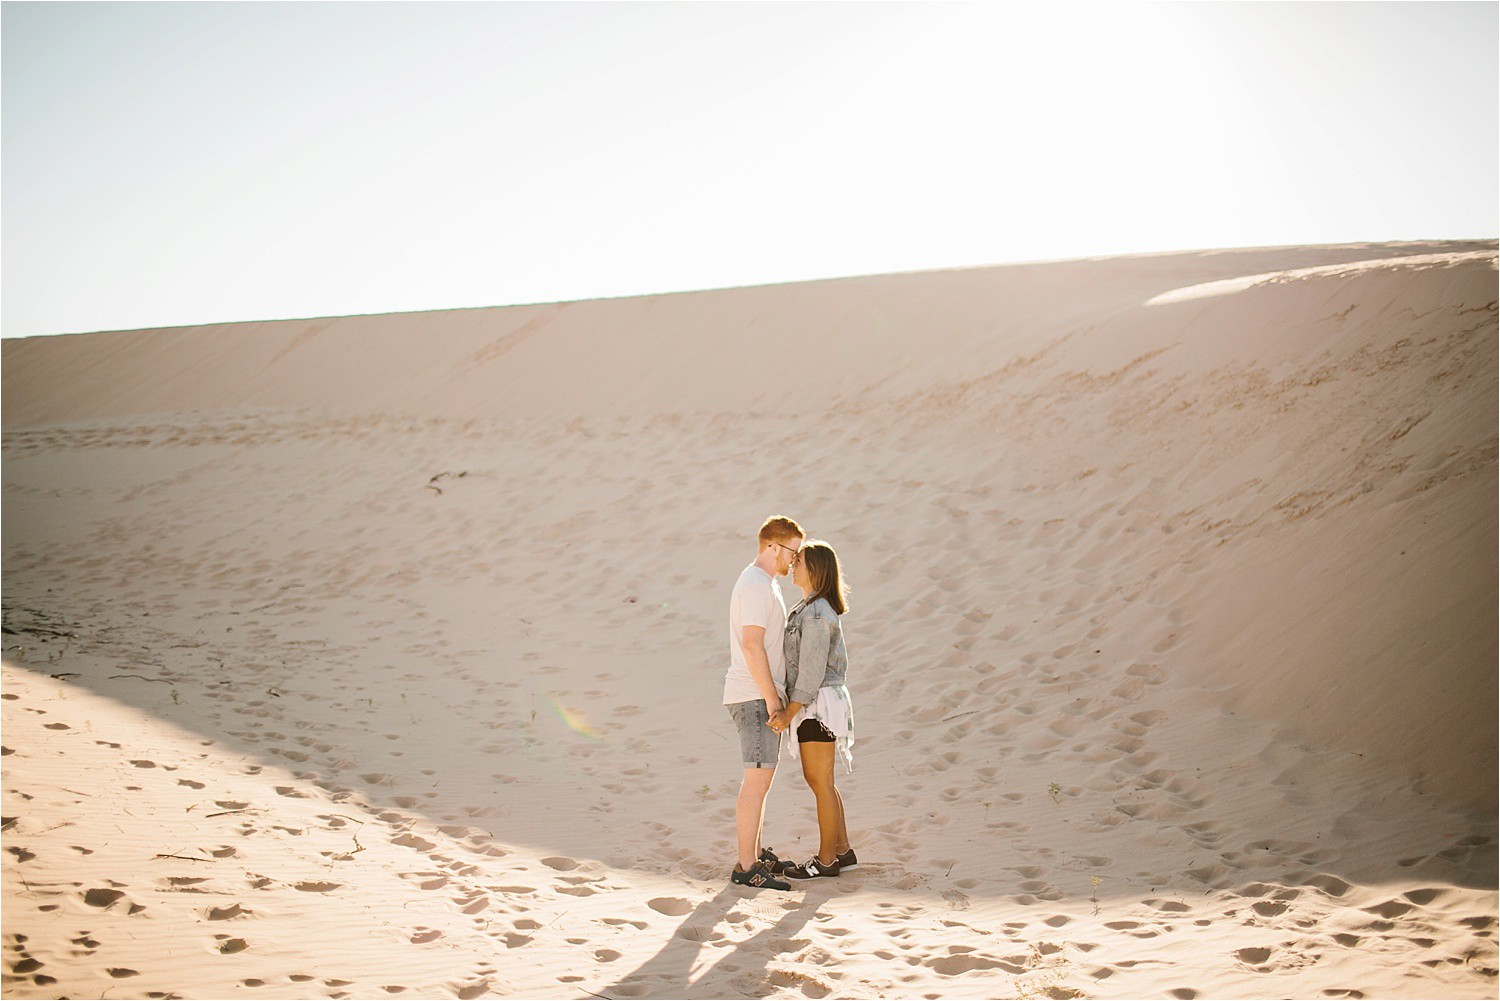 Lauren + Jacob __ a monahans sand dunes engagement session at sunrise by North Texas Wedding Photographer, Rachel Meagan Photography __ 41